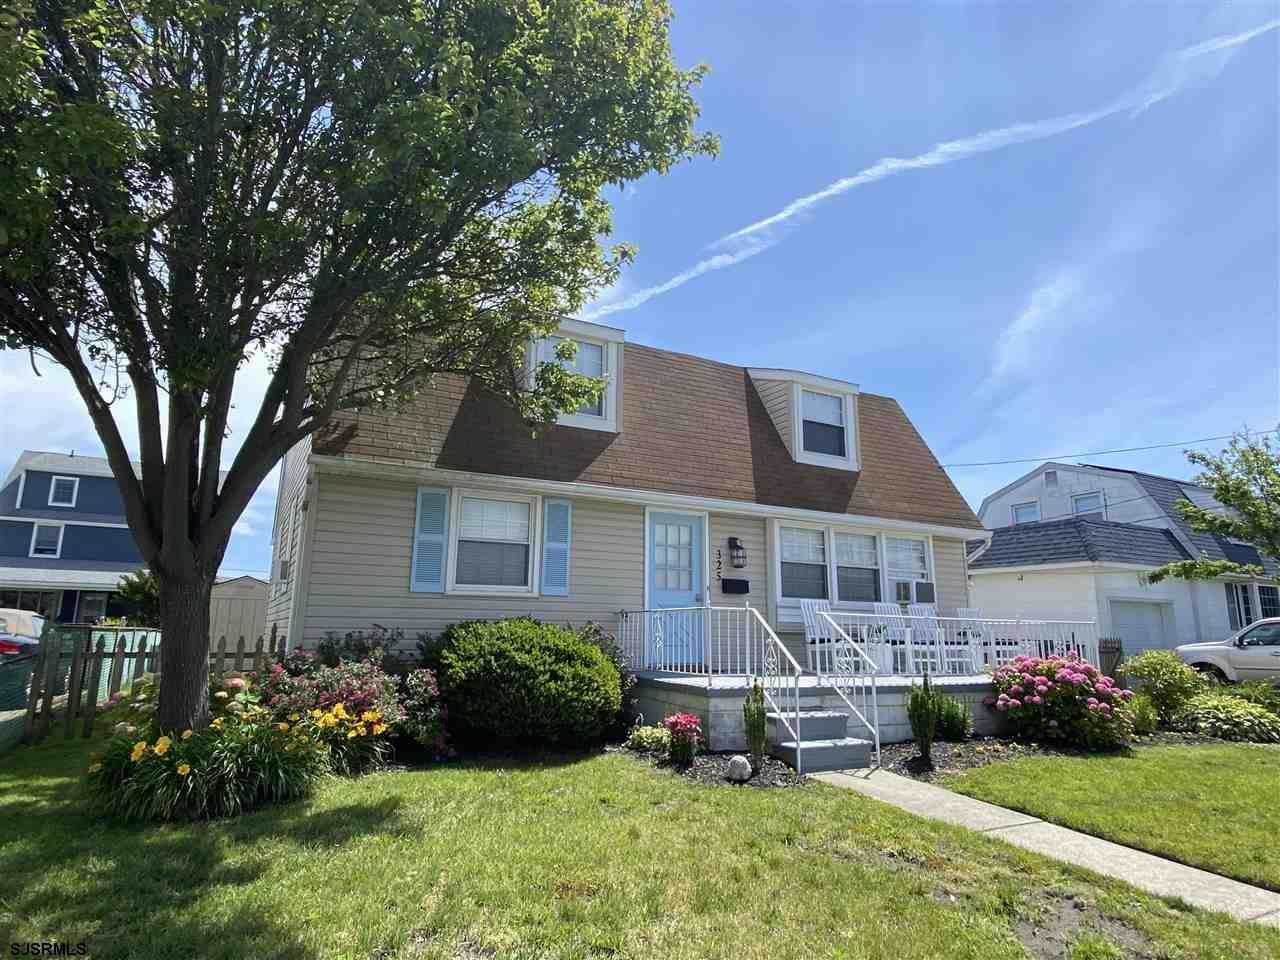 https://secure-forwarder.pl-internal.com/responder/photos.listhub.net/SJSRMLSNJ/523691/1?lm=20190613T200135